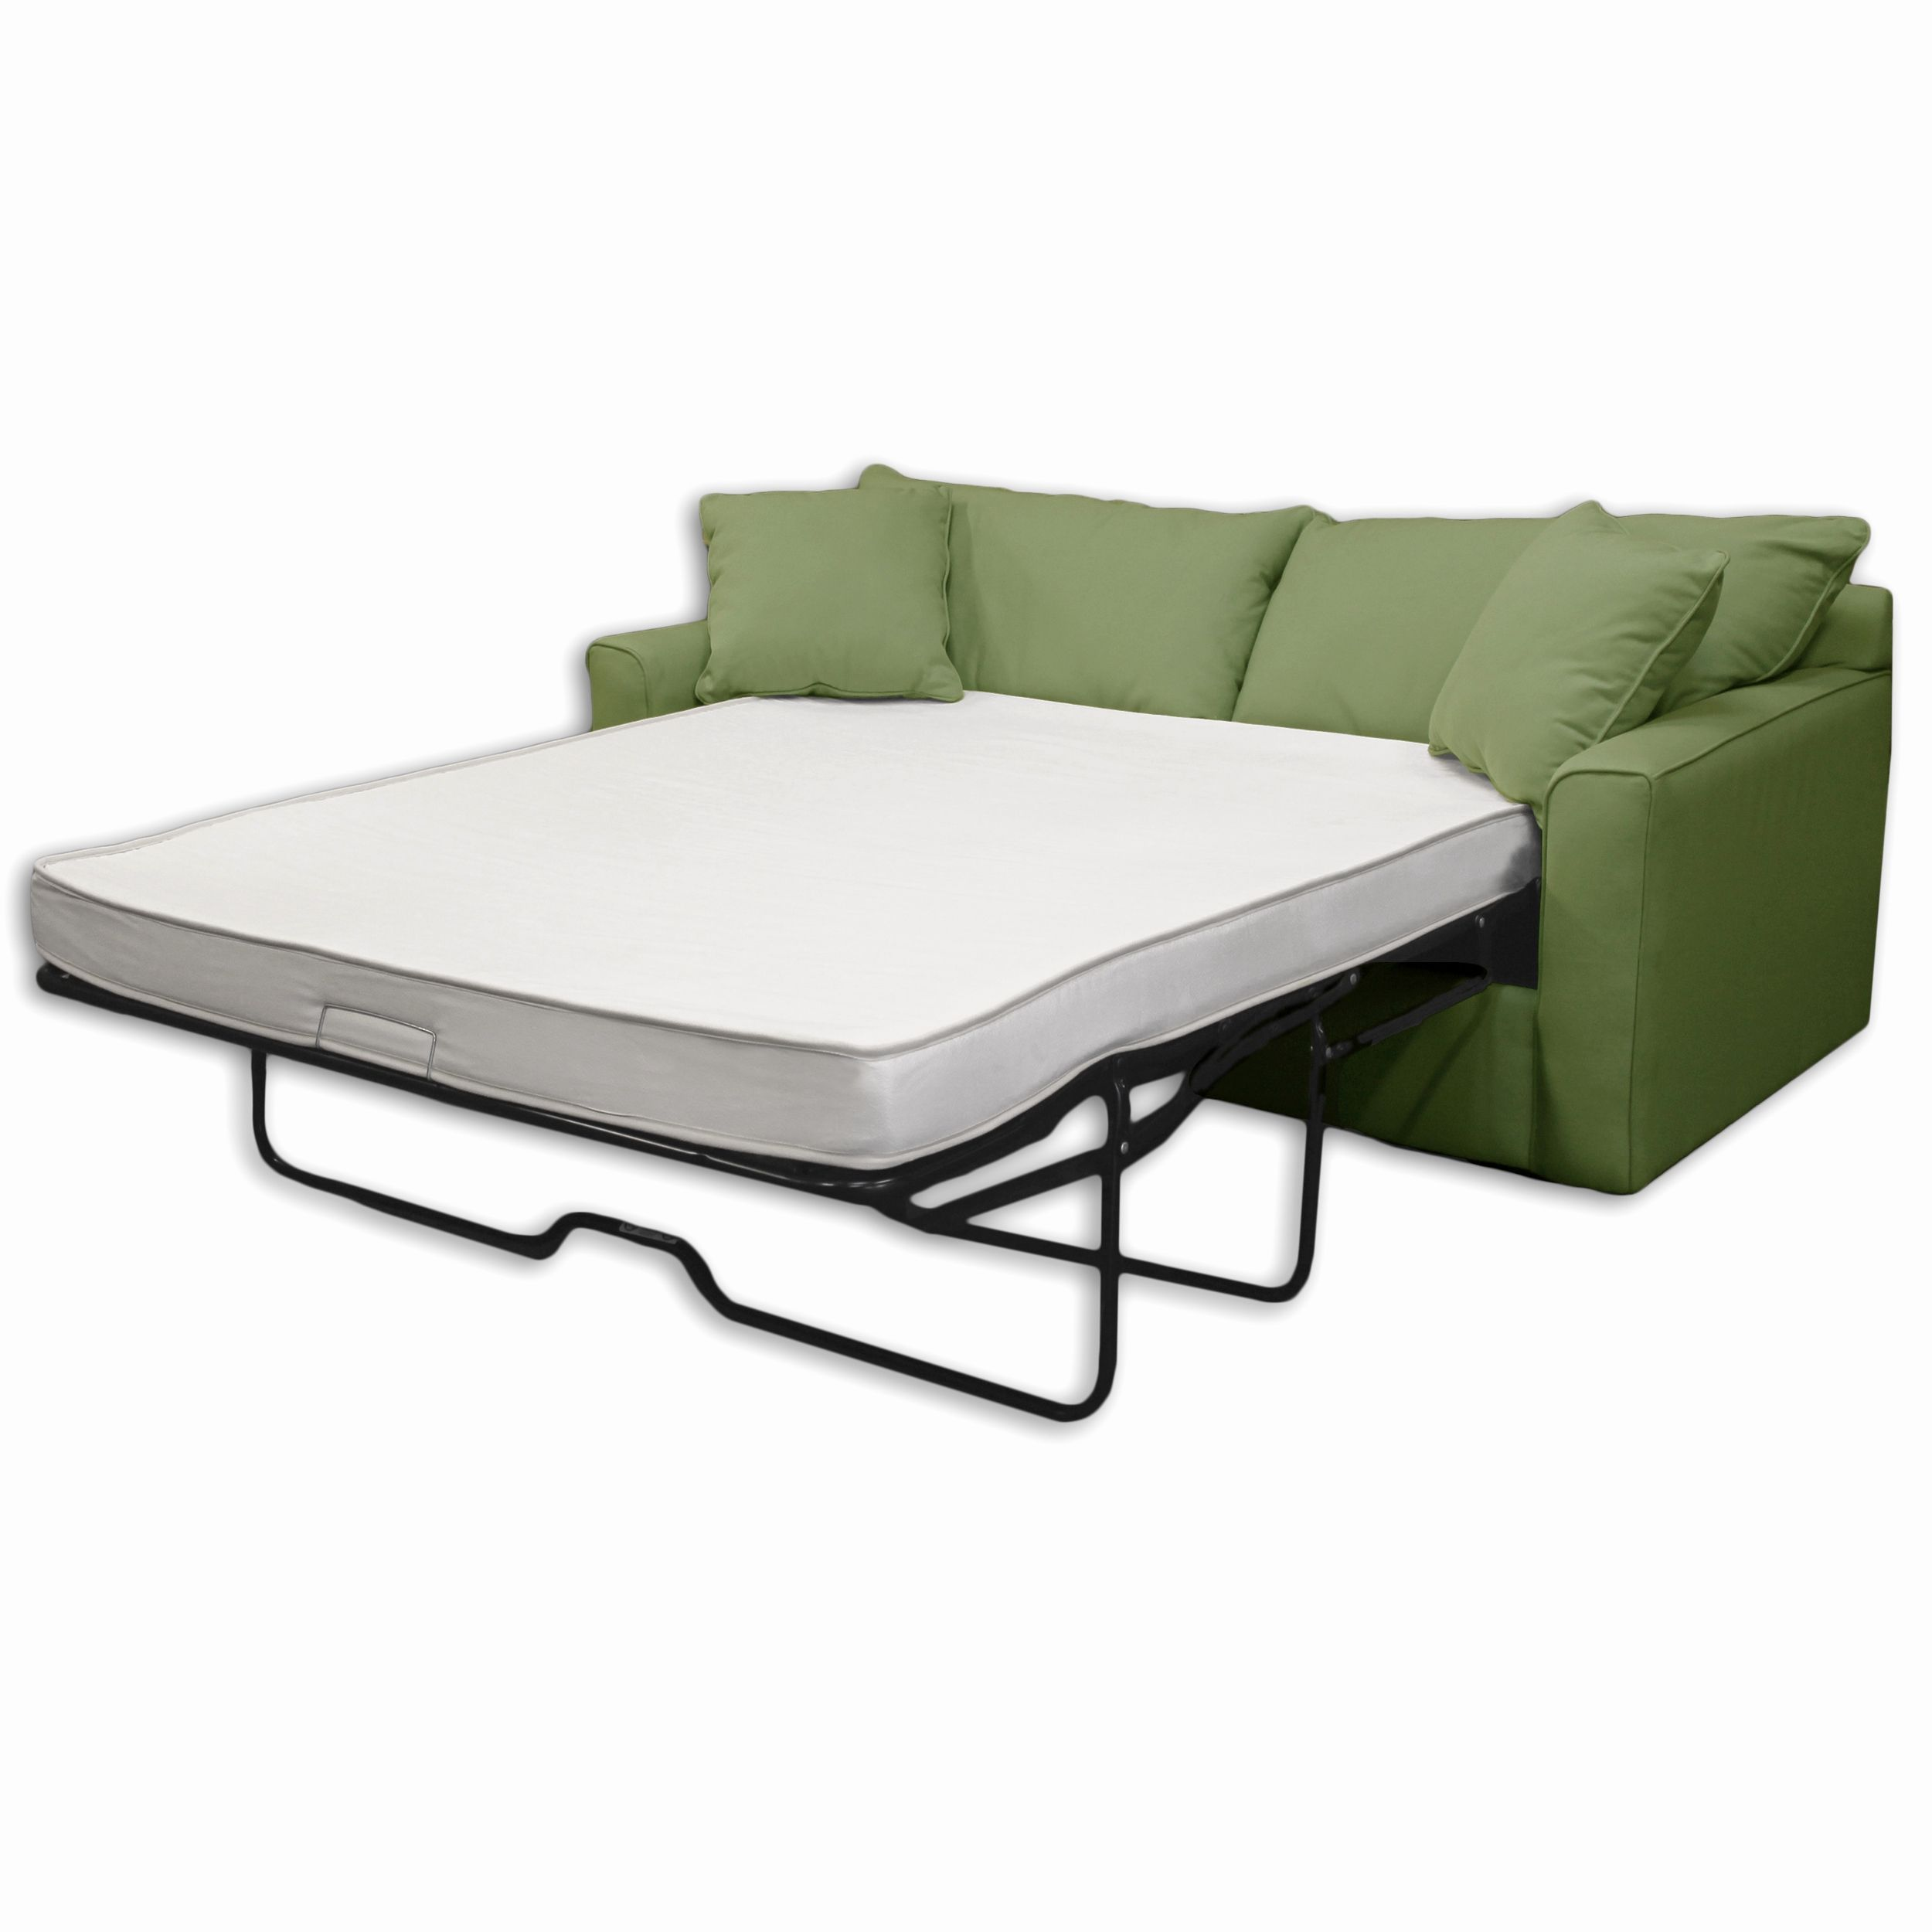 Pin By Great Sofas On Sleeper Sofa Foam Sofa Bed Sofa Bed